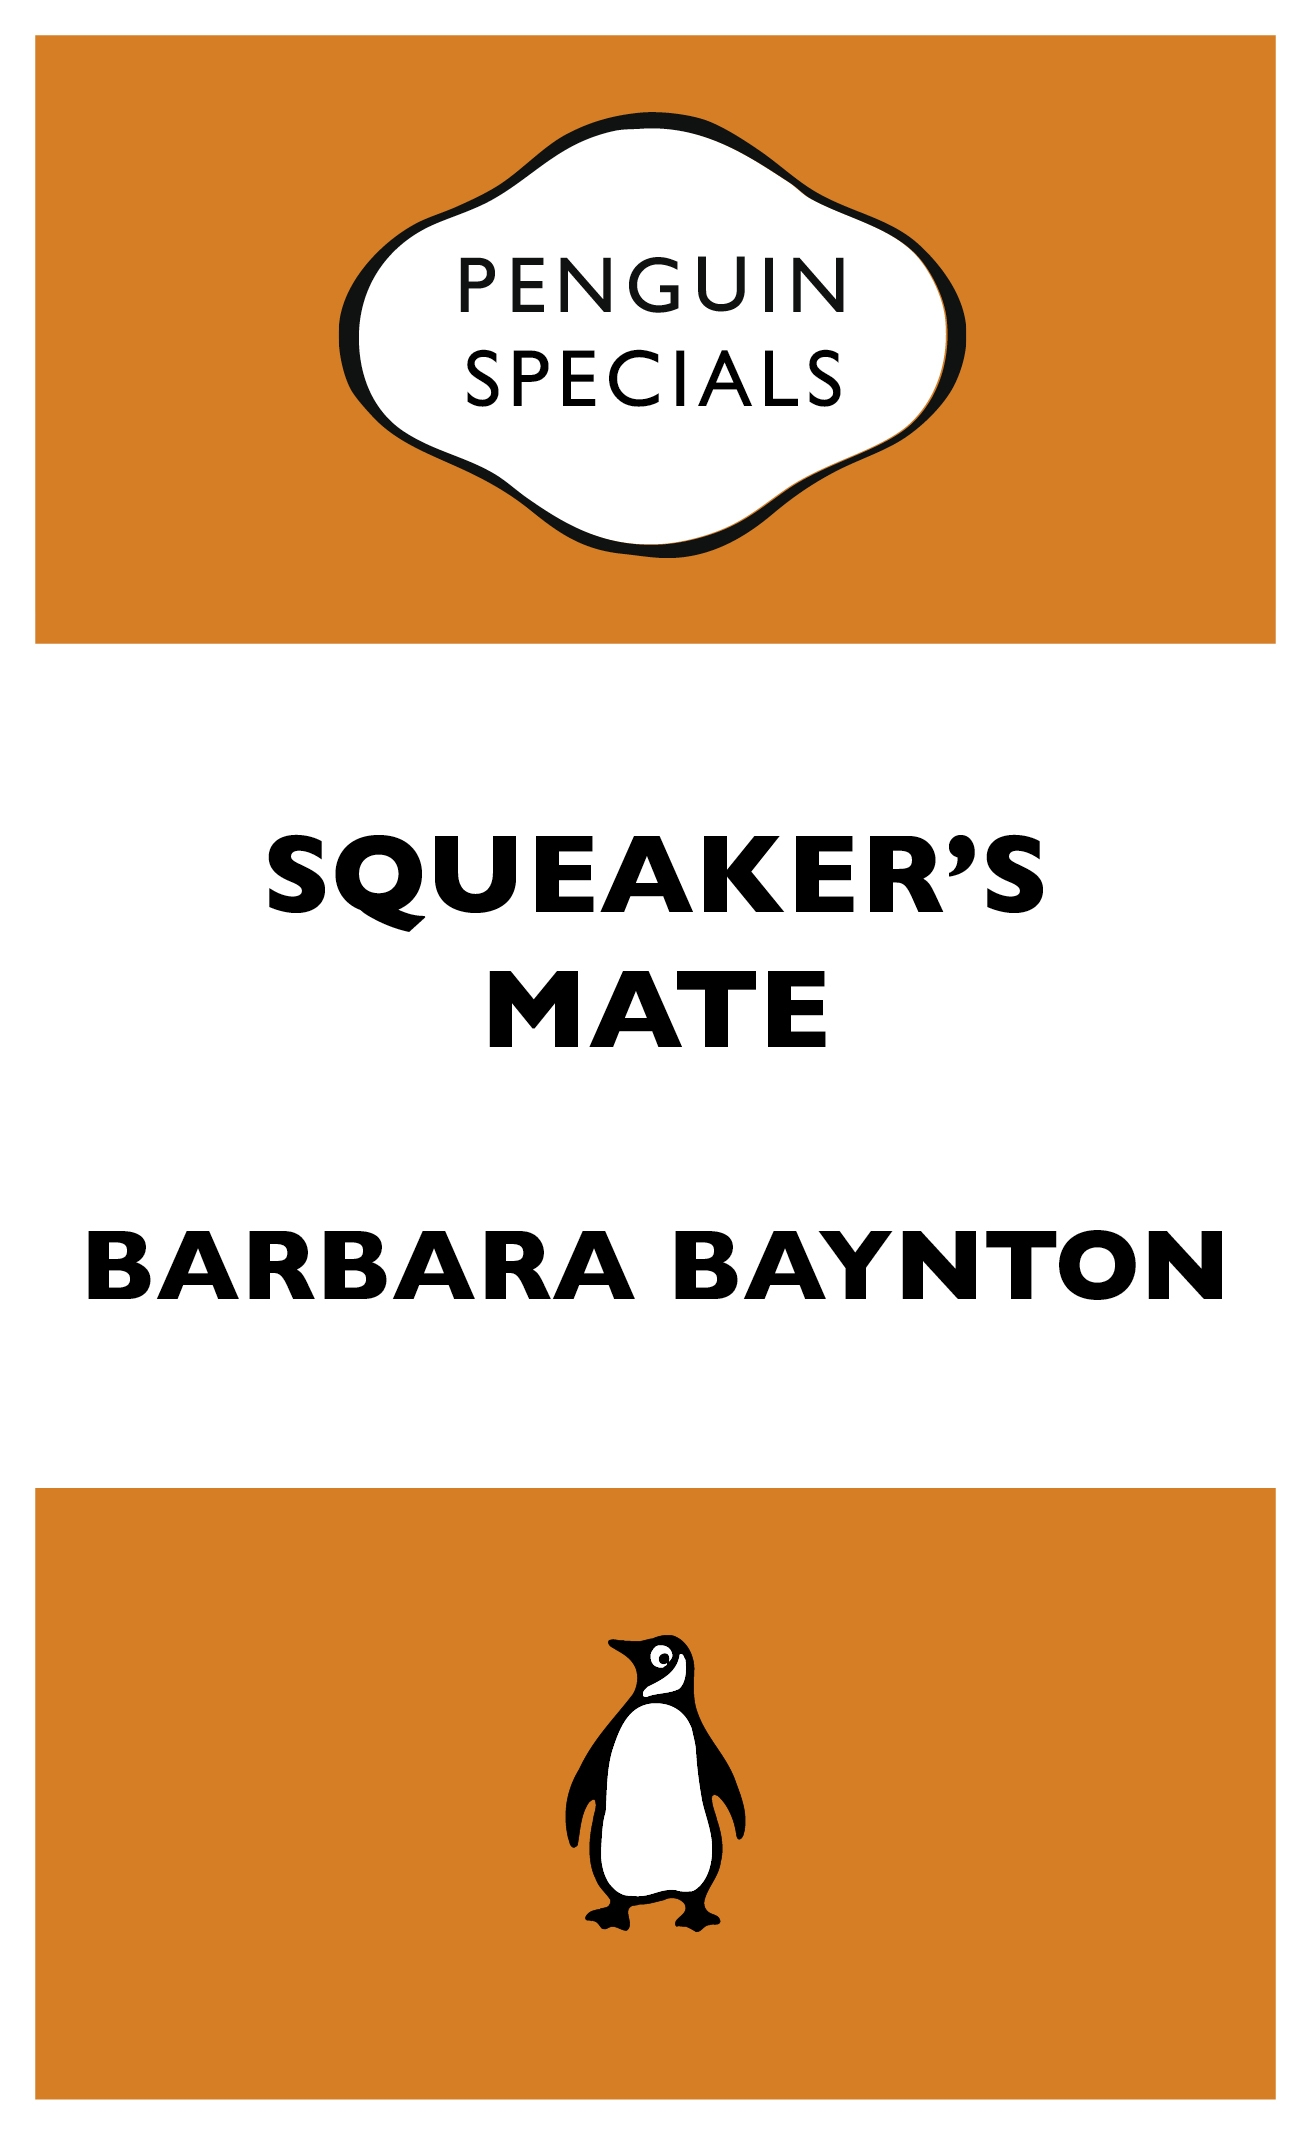 barbara baynton squeakers mate Set in gippsland in 1880 and based on the short story by barbara baynton, squeaker (david mitchell) and his mate (myra skipper) are a primitive, illiterate, poverty-stricken pair, who eke out a miserable living from felling timber in the remote bush.